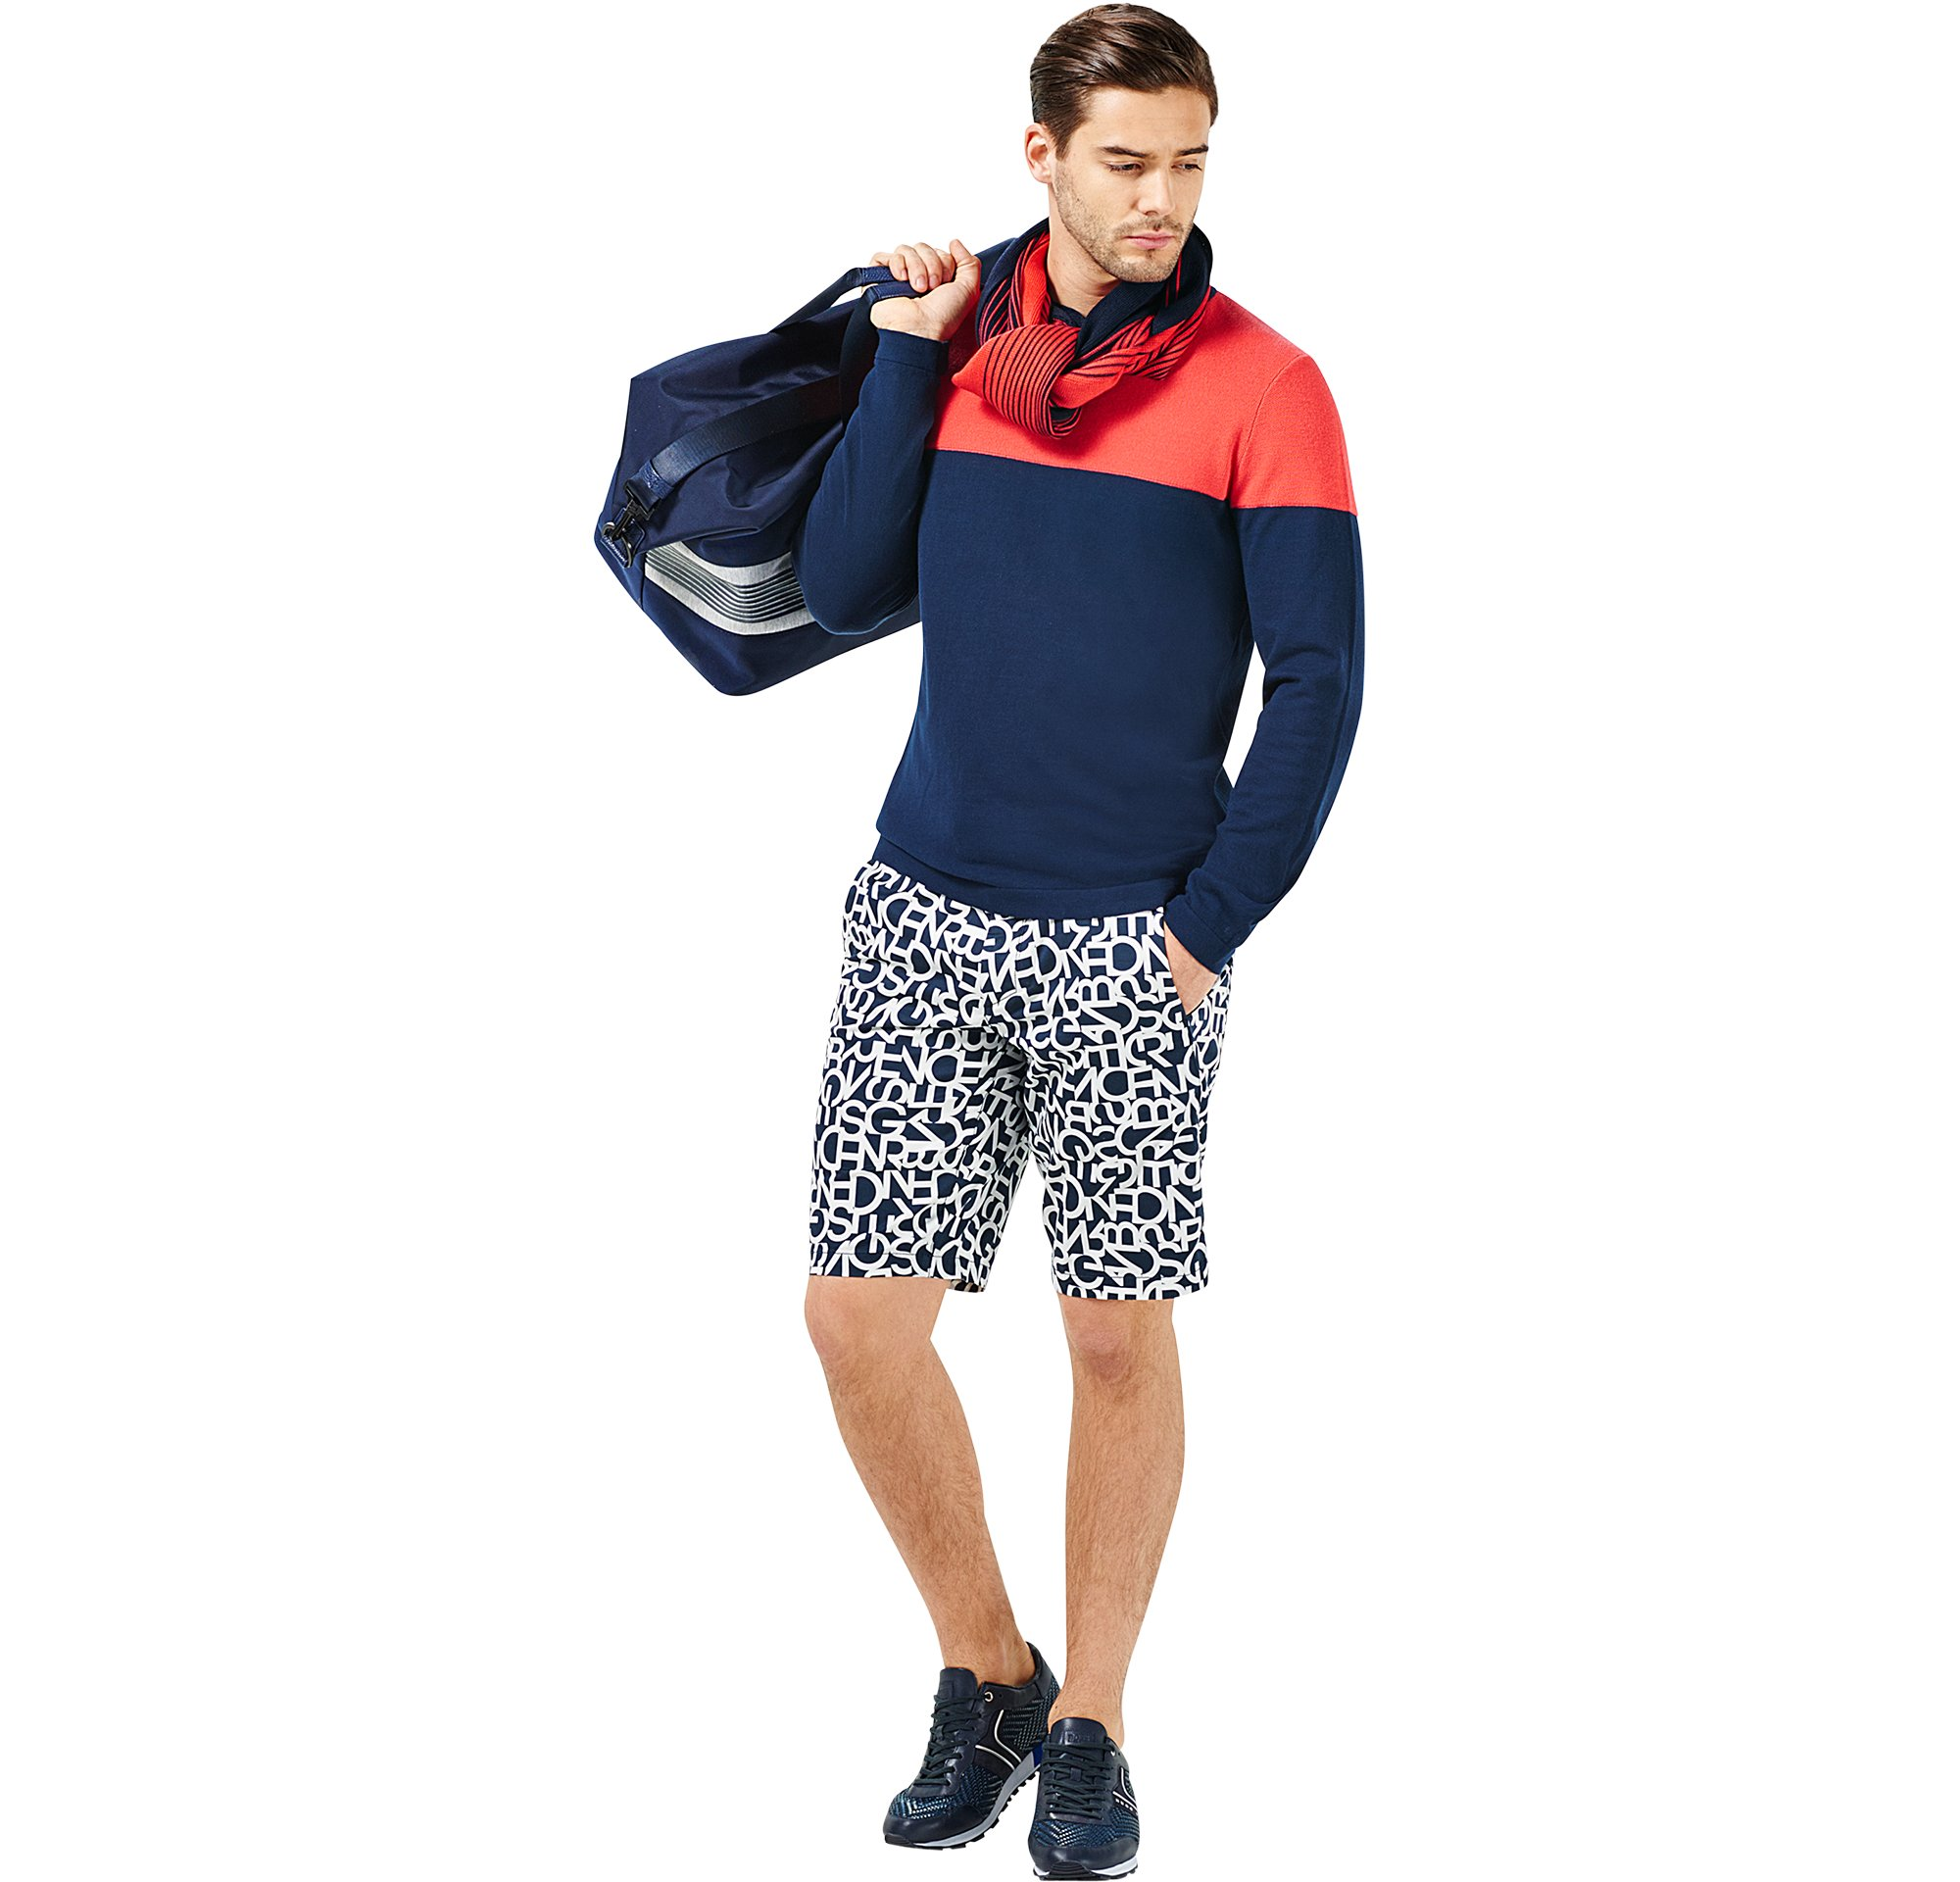 Knitwear, scarf, short trousers and bag by BOSS Green Menswear